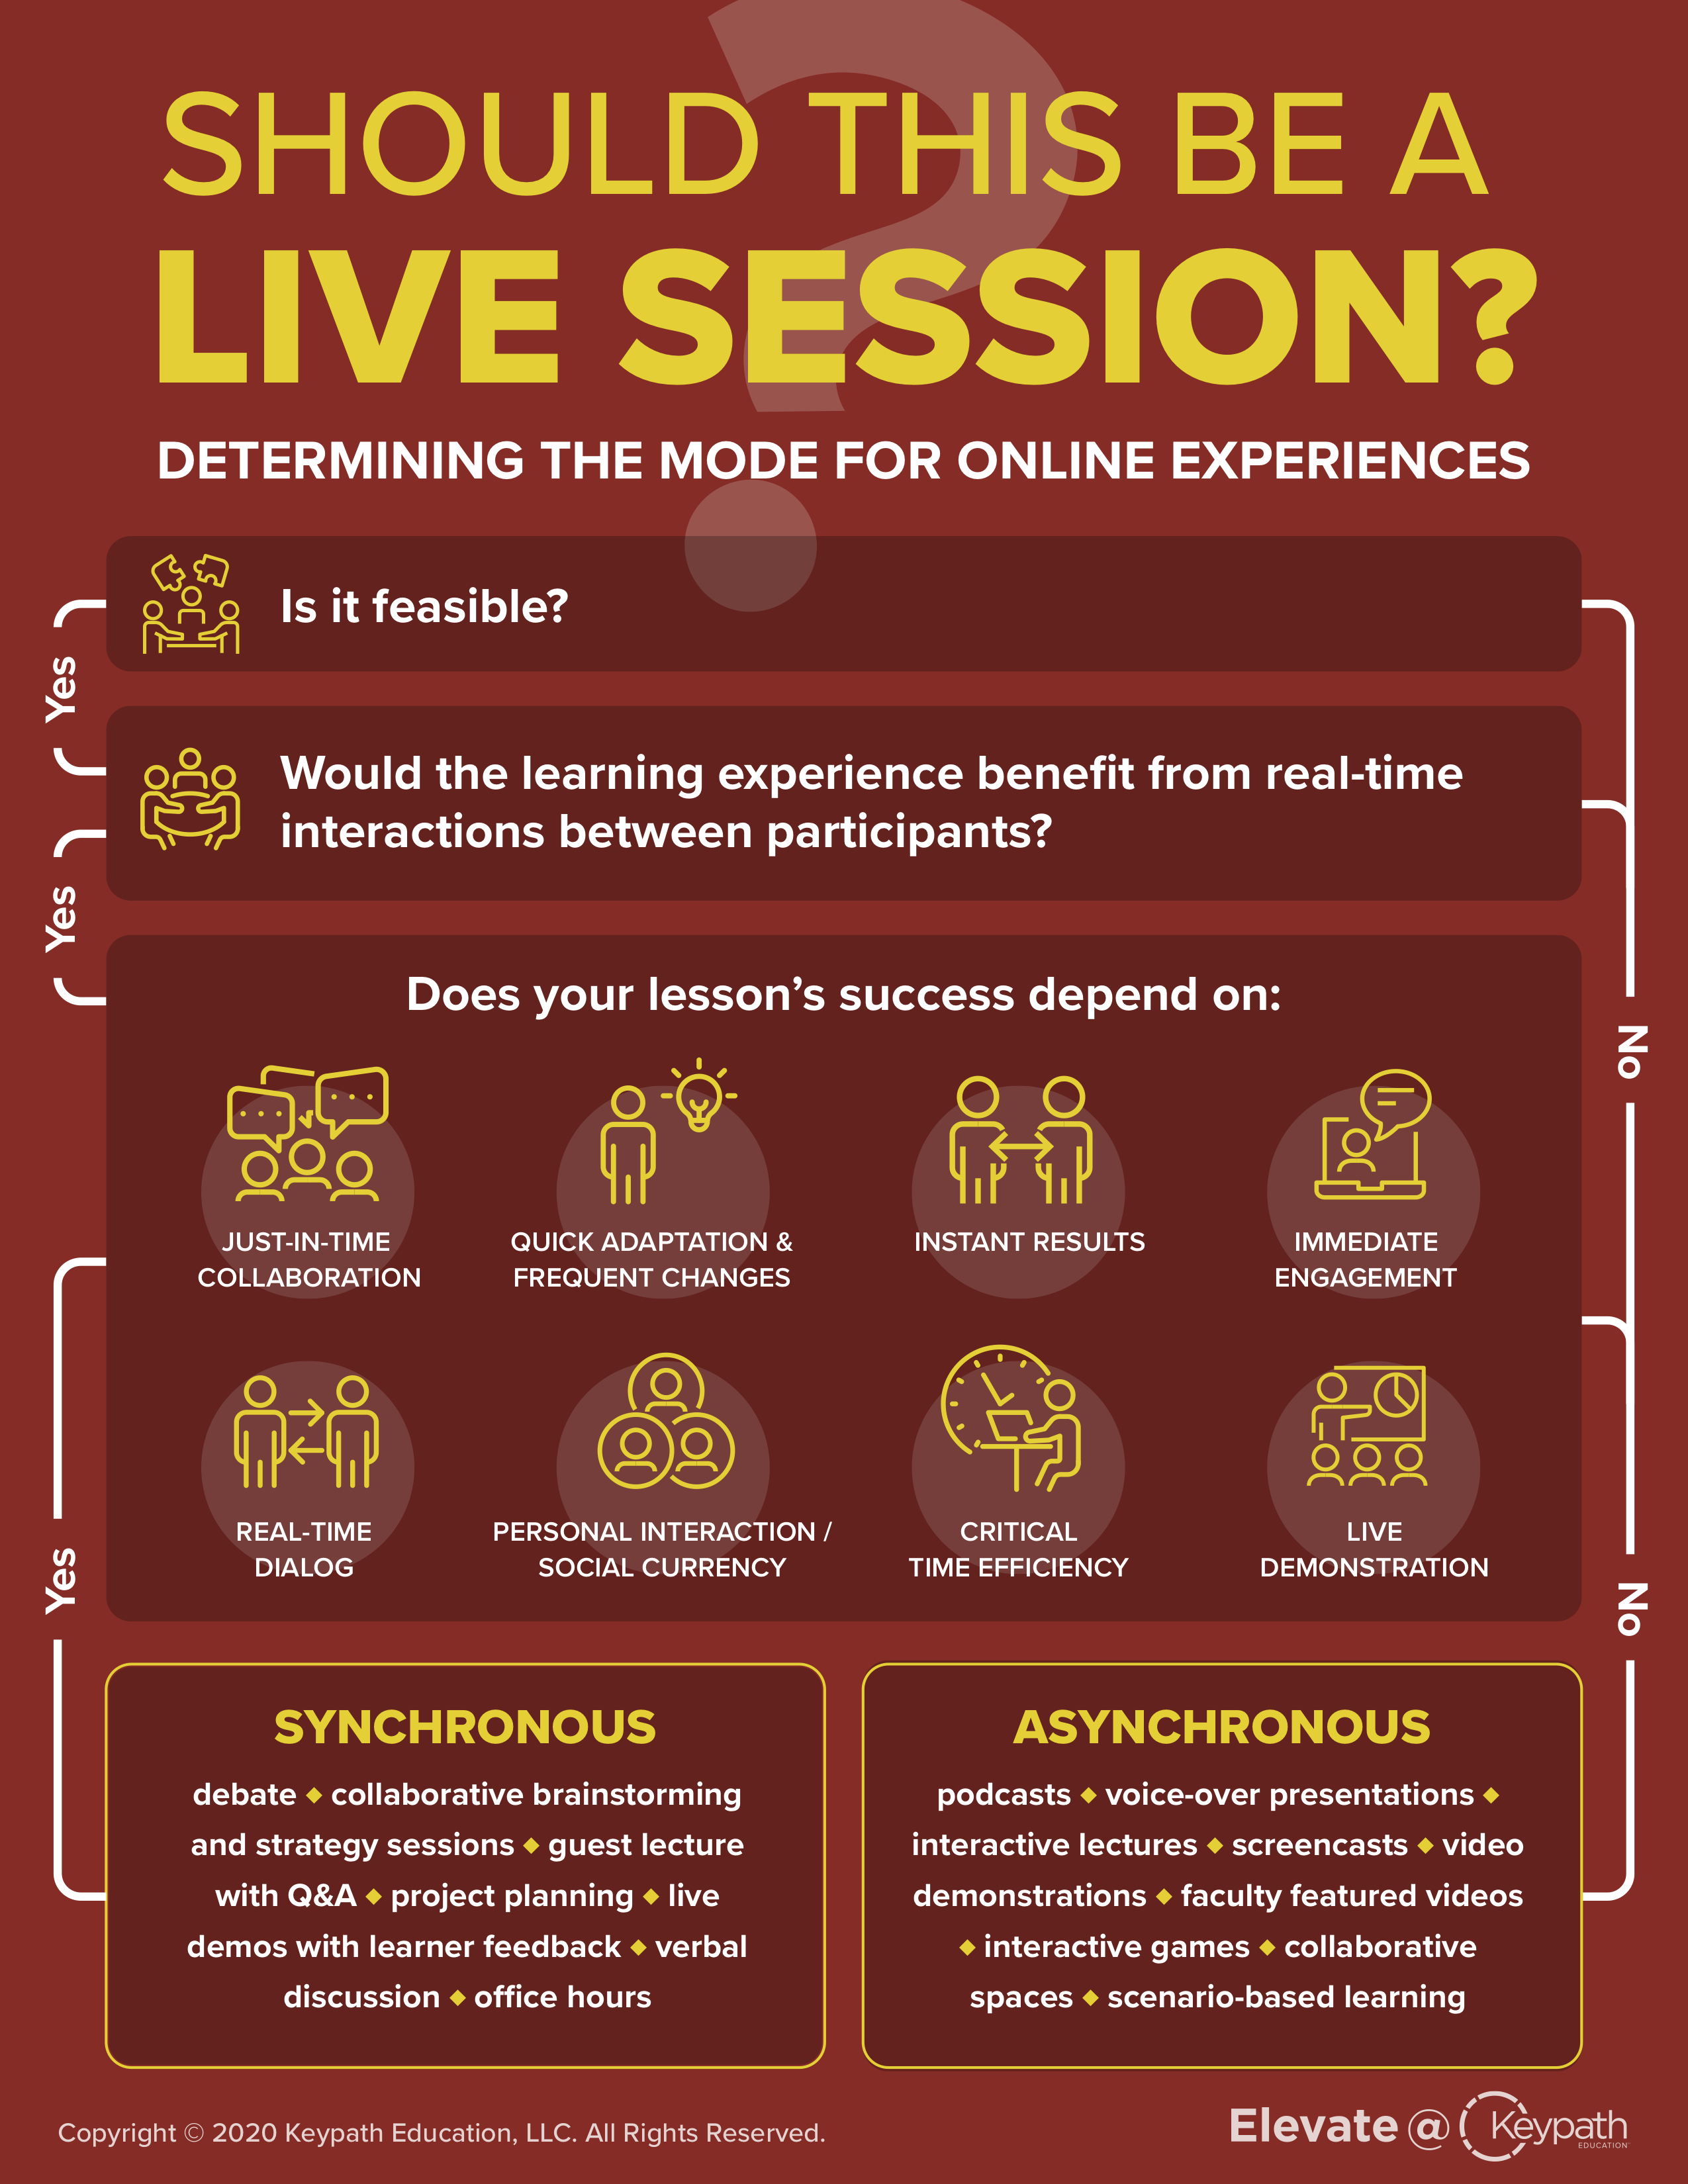 Should This Be a Live Session Infographic